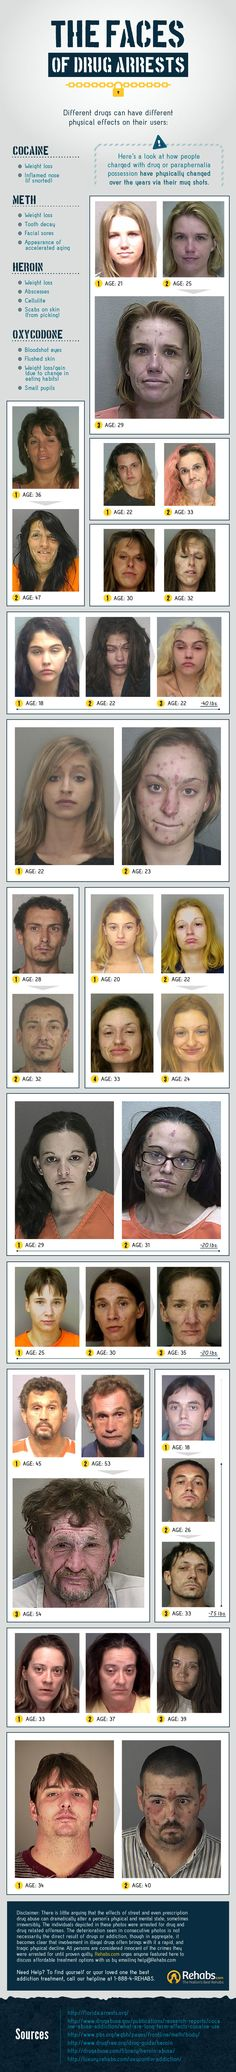 These Photos Show How Heroin, Cocaine and Oxycodone Change Your Appearance Over Time